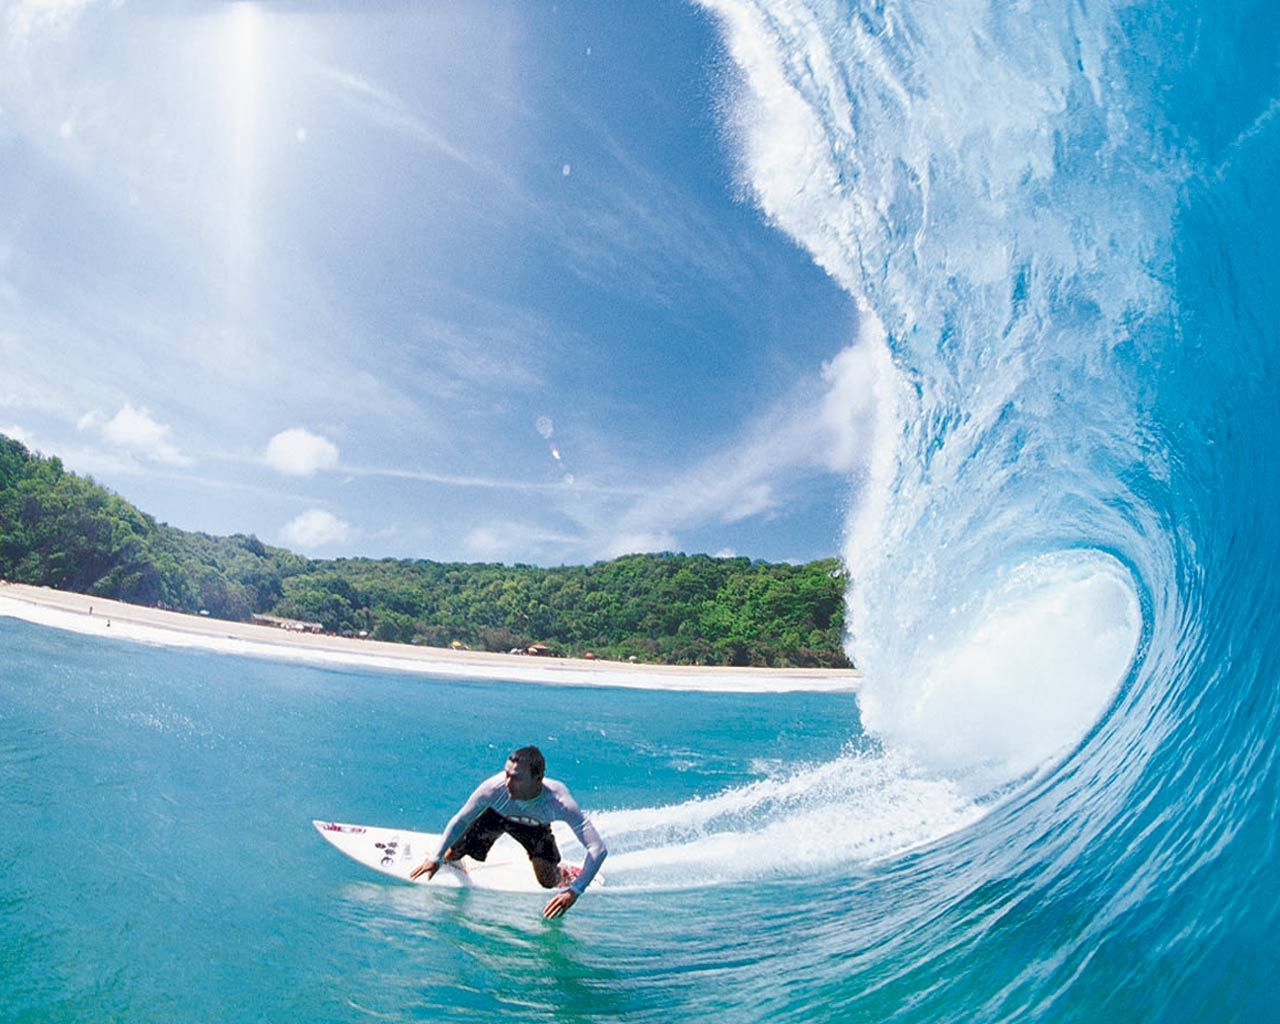 Hd surfing wallpapers wallpaper hd wallpapers pinterest hd surfing wallpapers wallpaper voltagebd Choice Image